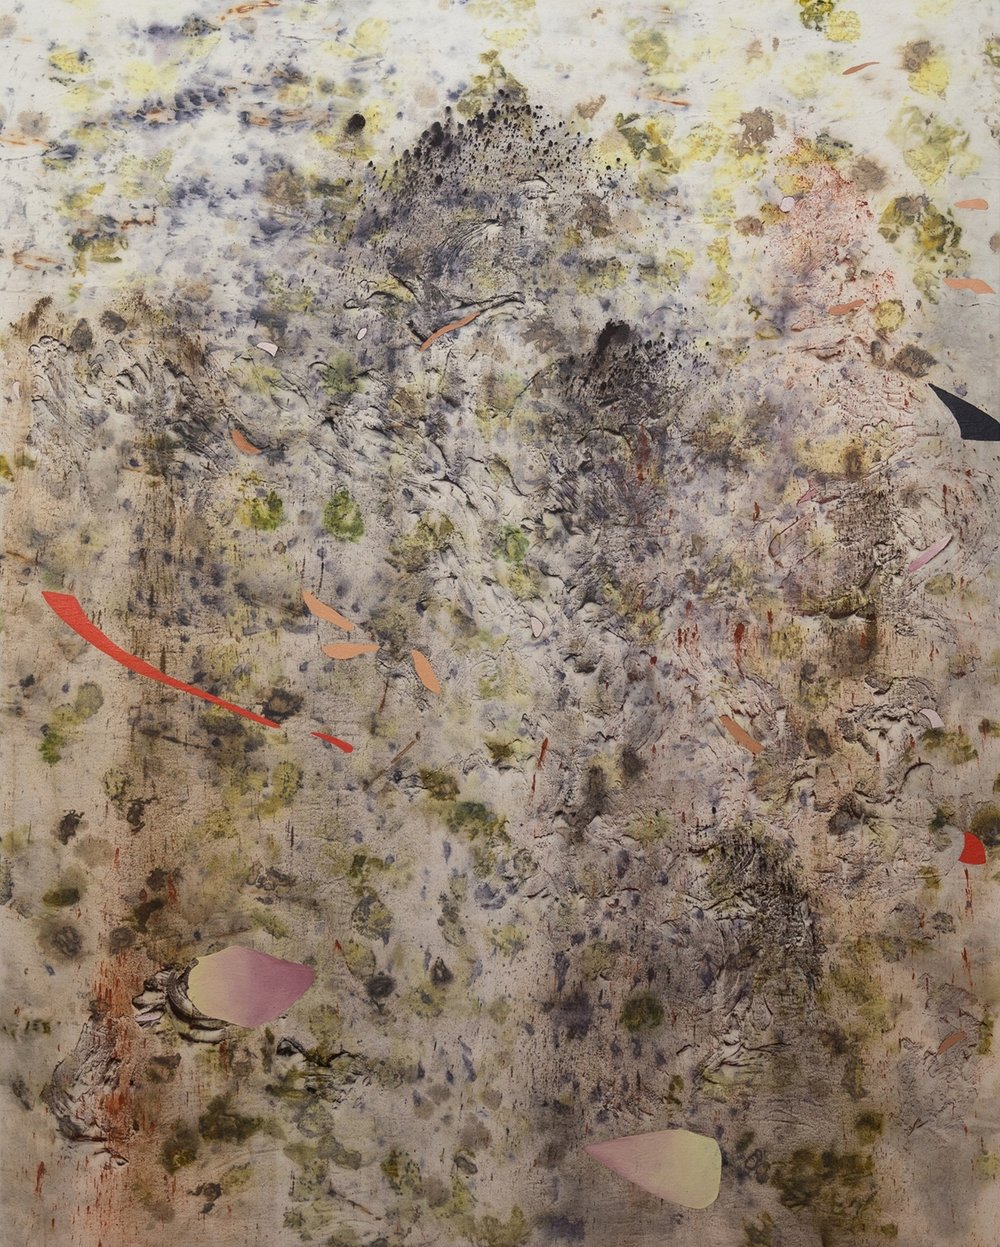 Mourning Humus, Cold Wax Medium, Oil, Raw Pigments, Sand, Red Earth, and Various Plant Materials (including Acorns, Avocado Pits, Ferns, Sumac Berries, Rose Petals, Onion Skins, Tansy Flower, Wildflowers, and Rusty Nails) on Canvas, 5x4 feet, 2018